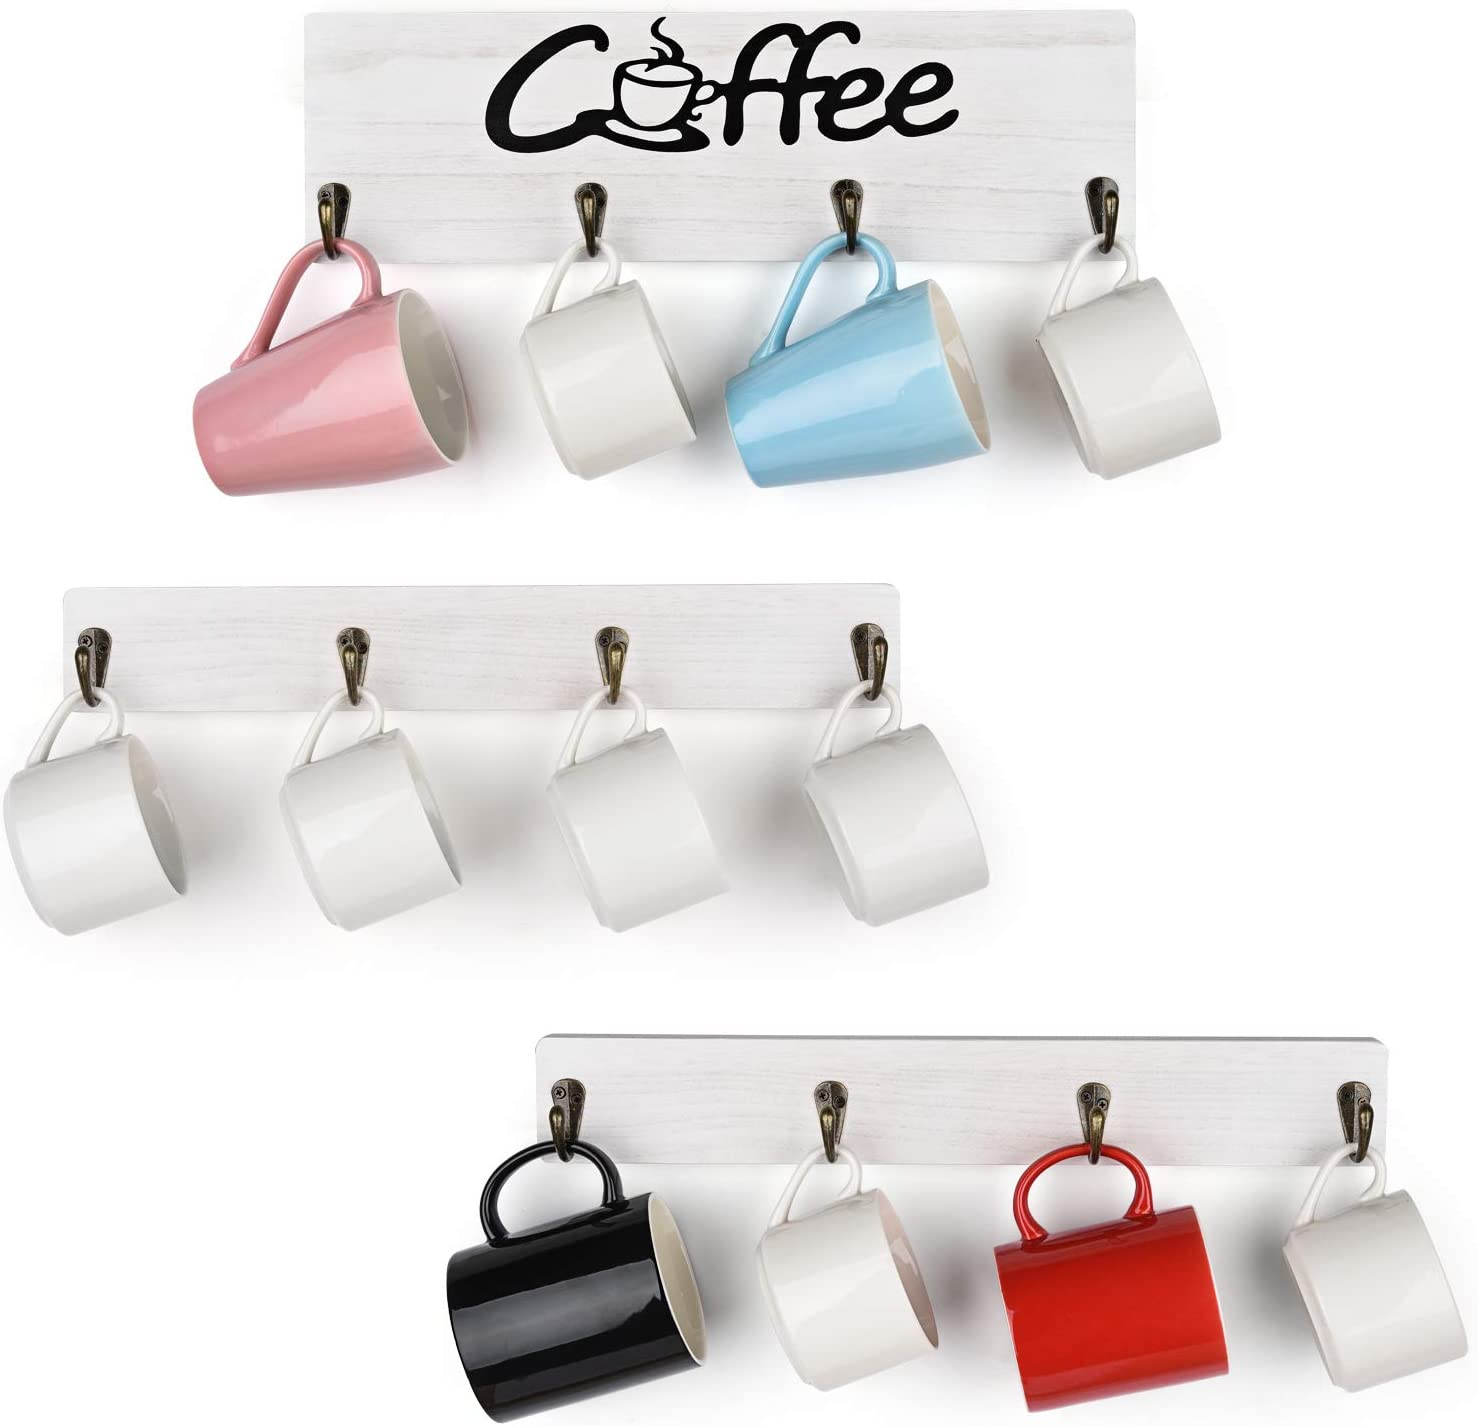 Olakee Coffee Mug Holder, Rustic Mug Rack Wall Mounted with Coffee Sign- 12 Coffee Cup Hangers for Kitchen Organizer, Coffee Nook Decor (White)